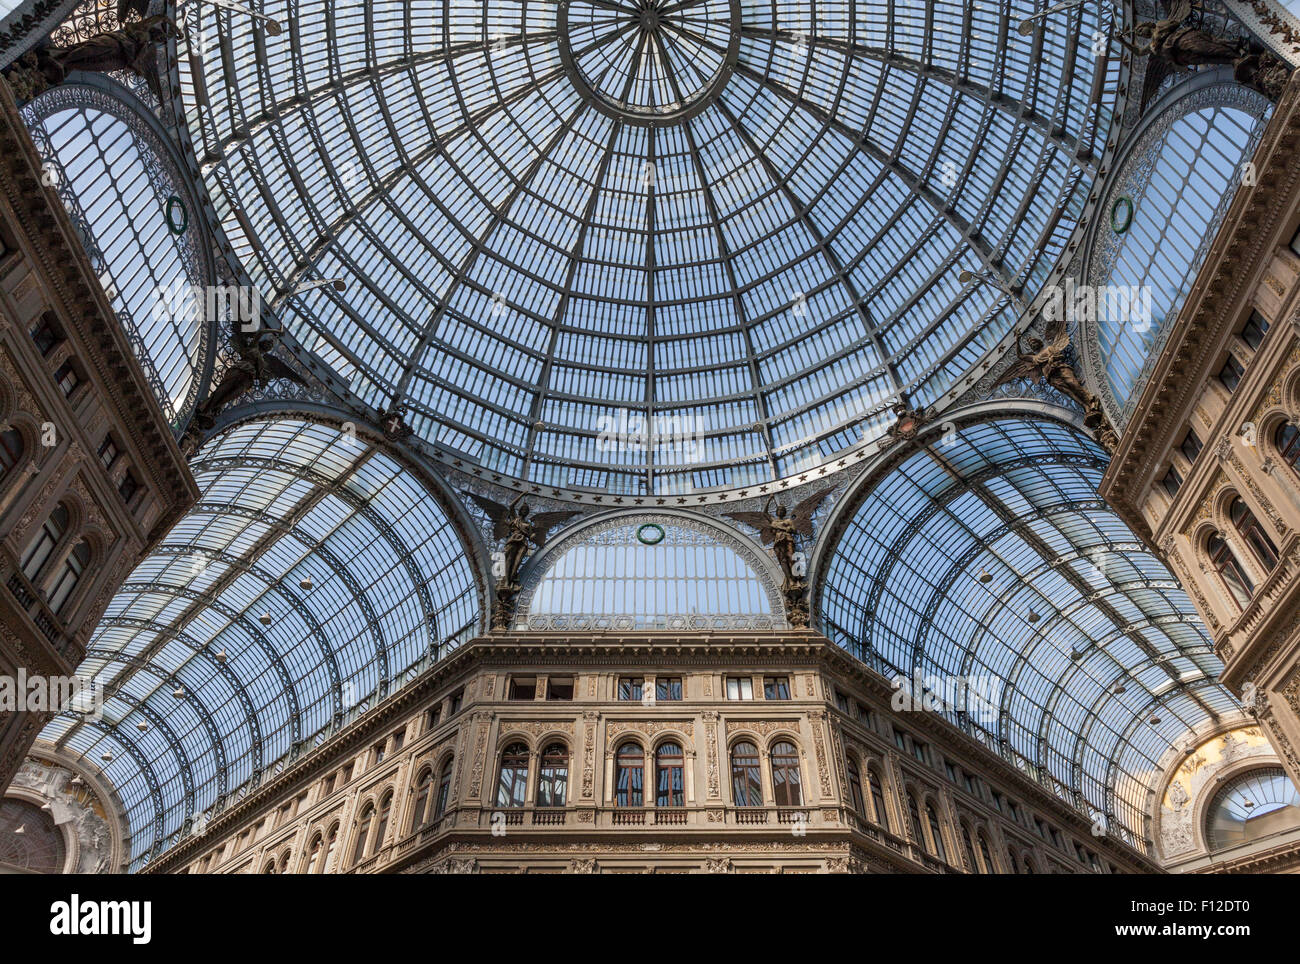 Glass dome and vaults of the Galleria Umberto I in Naples, Italy - Stock Image